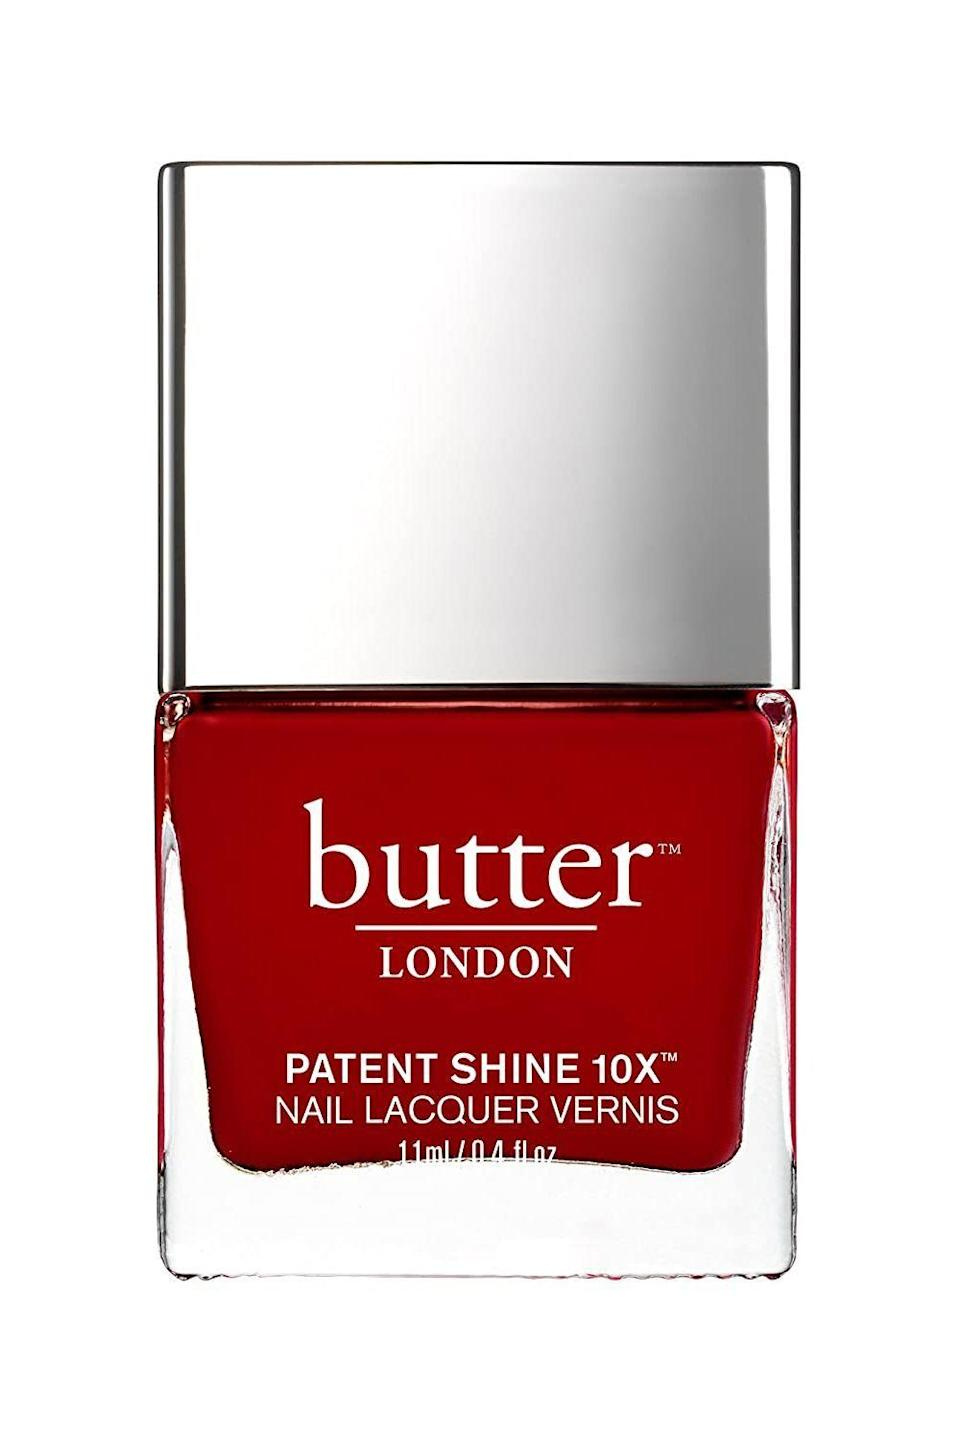 """<p><strong>butter LONDON</strong></p><p>amazon.com</p><p><strong>$18.00</strong></p><p><a href=""""https://www.amazon.com/dp/B00V6R2YW8?tag=syn-yahoo-20&ascsubtag=%5Bartid%7C10049.g.33966550%5Bsrc%7Cyahoo-us"""" rel=""""nofollow noopener"""" target=""""_blank"""" data-ylk=""""slk:Shop Now"""" class=""""link rapid-noclick-resp"""">Shop Now</a></p><p>If you didn't know better, you'd think two coats of this bright-red natural nail polish were actually <a href=""""https://www.cosmopolitan.com/style-beauty/beauty/a31902971/gel-nails-at-home/"""" rel=""""nofollow noopener"""" target=""""_blank"""" data-ylk=""""slk:gels"""" class=""""link rapid-noclick-resp"""">gels</a>. The ultra-shiny, 10-free formula is <strong>proven to last without chipping or dulling for up to 10 days</strong>. I mean, what more could you ask for?</p>"""